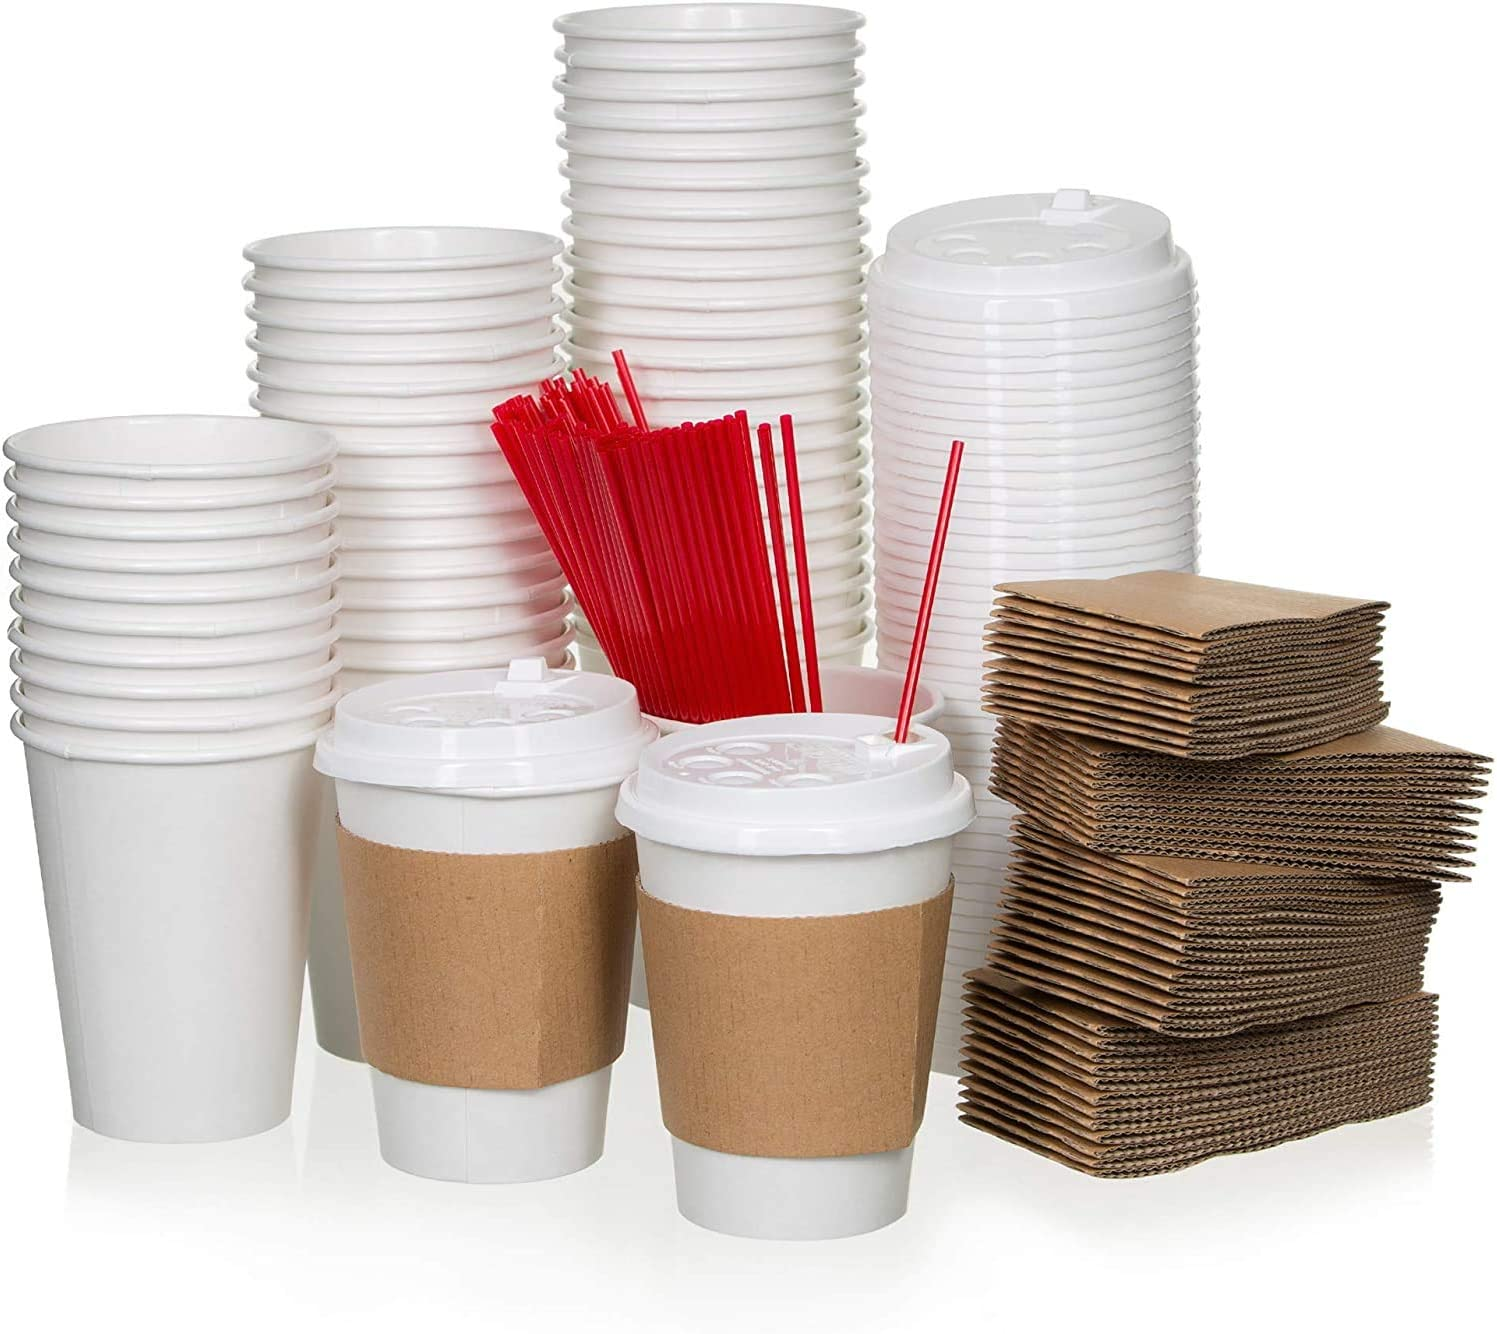 Paper Cups for Serving Beverages,12 oz Disposable Paper Coffee Cups Set of 50